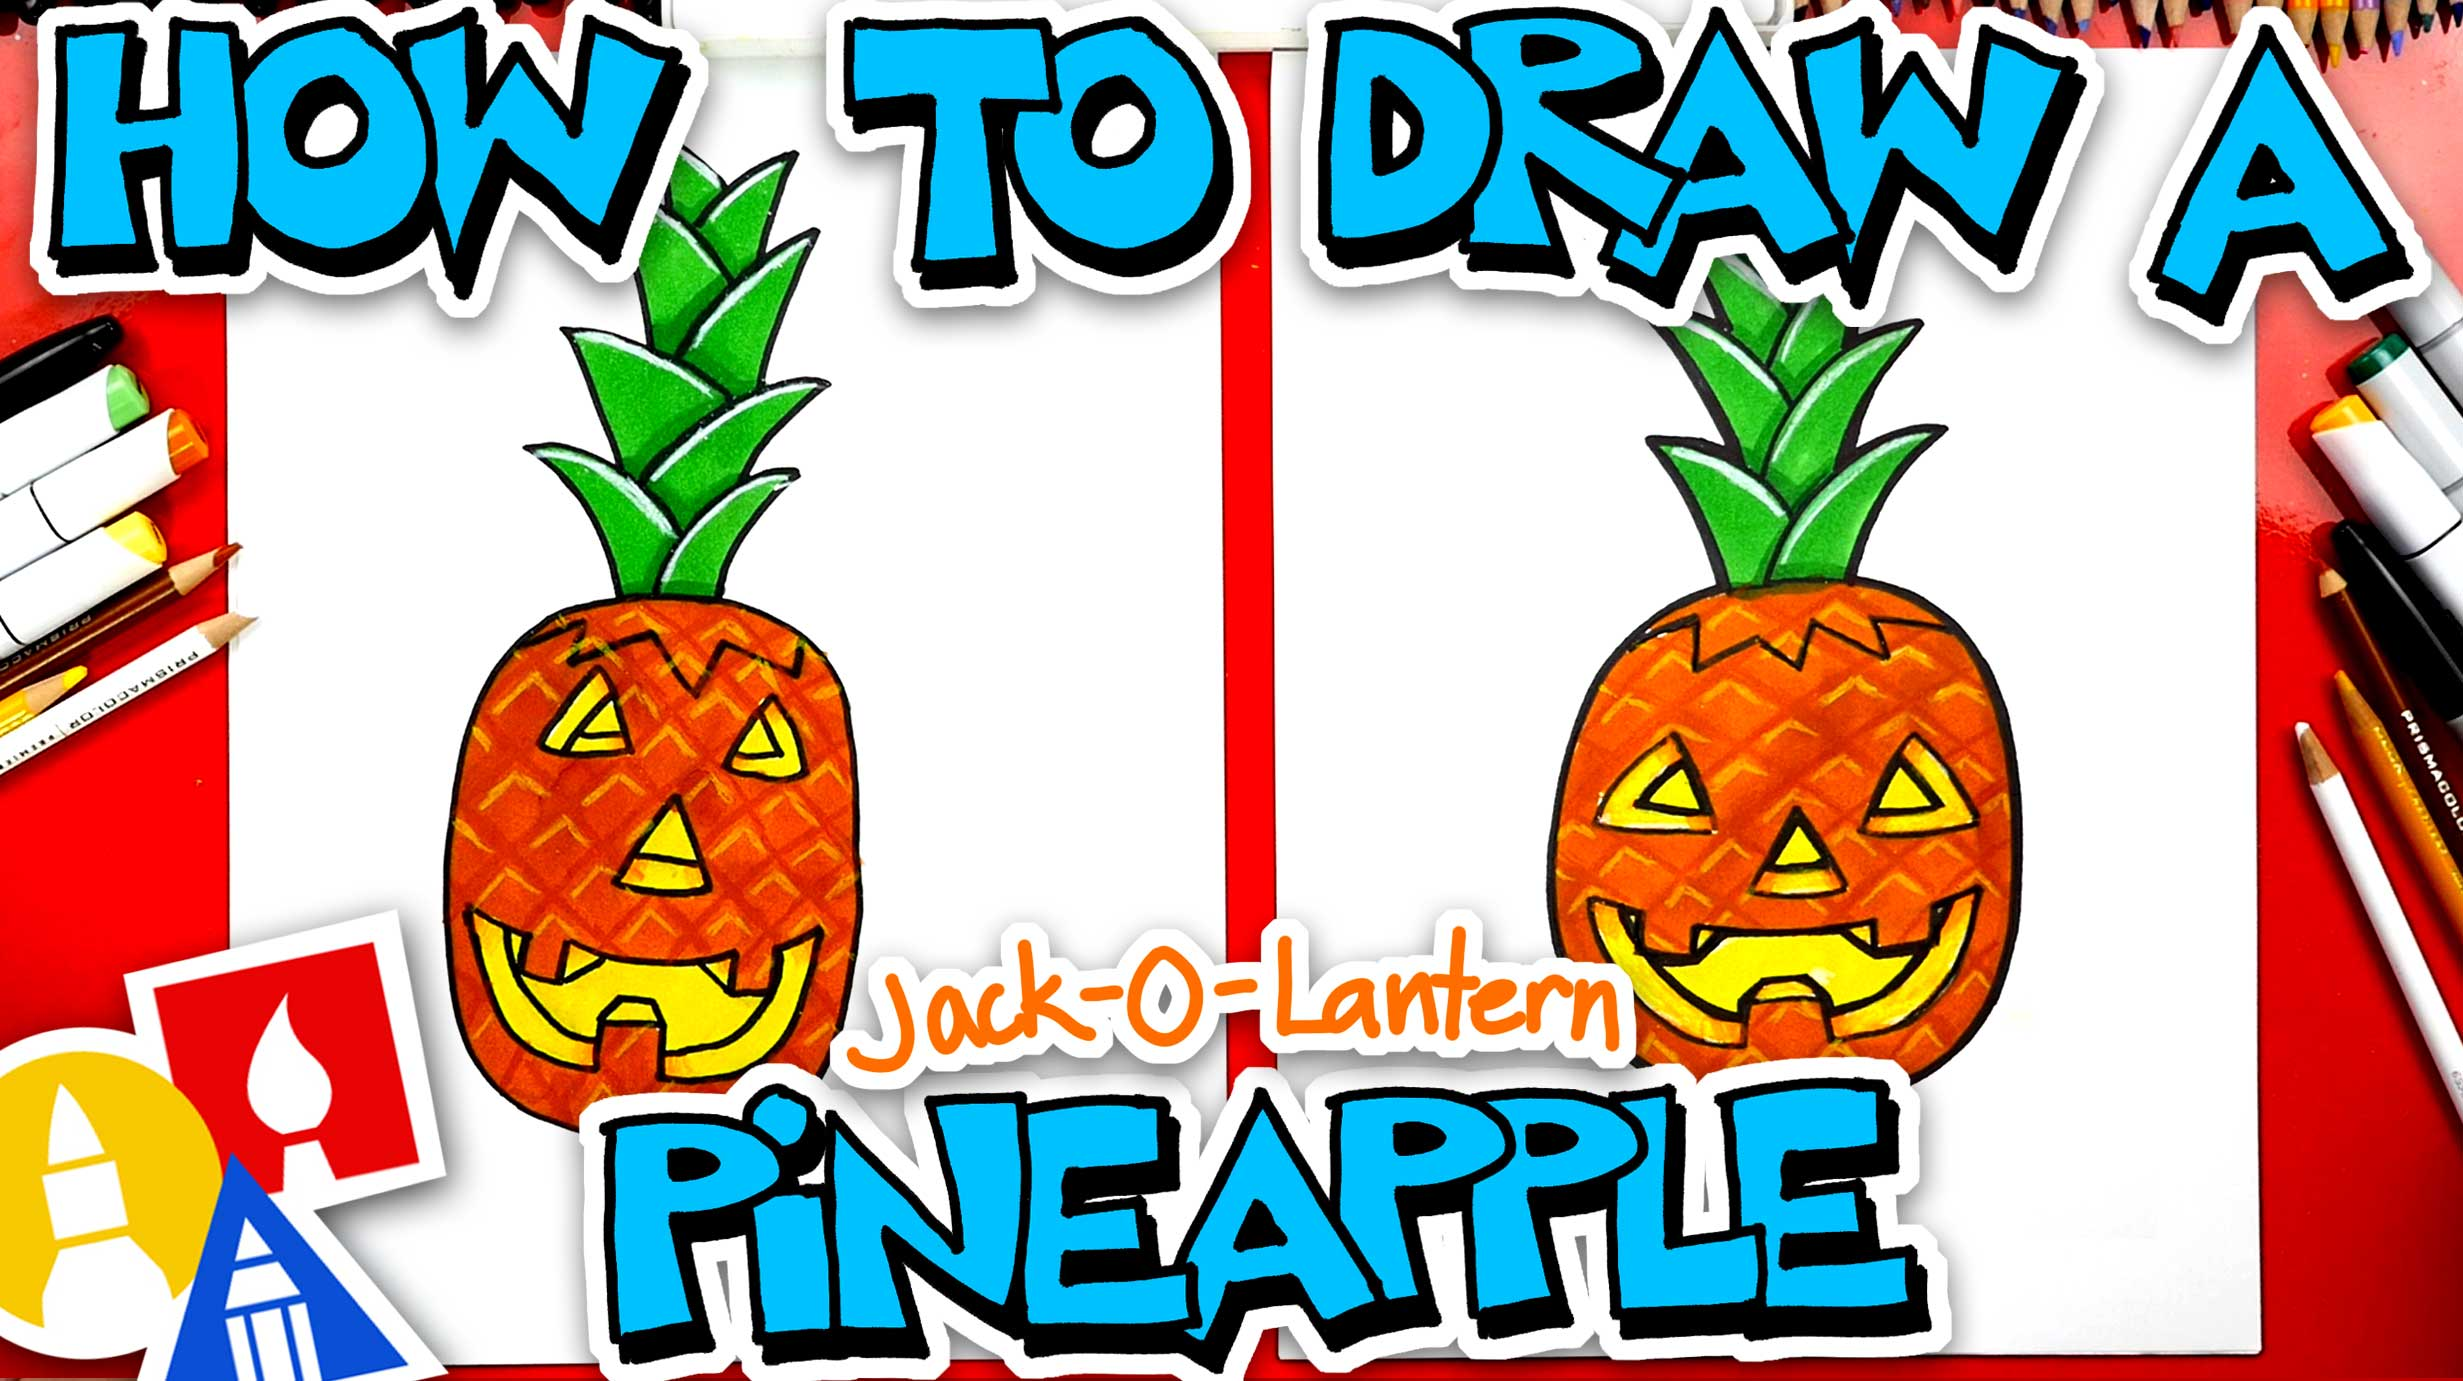 How To Draw A Jack O Lantern Pineapple Art For Kids Hub